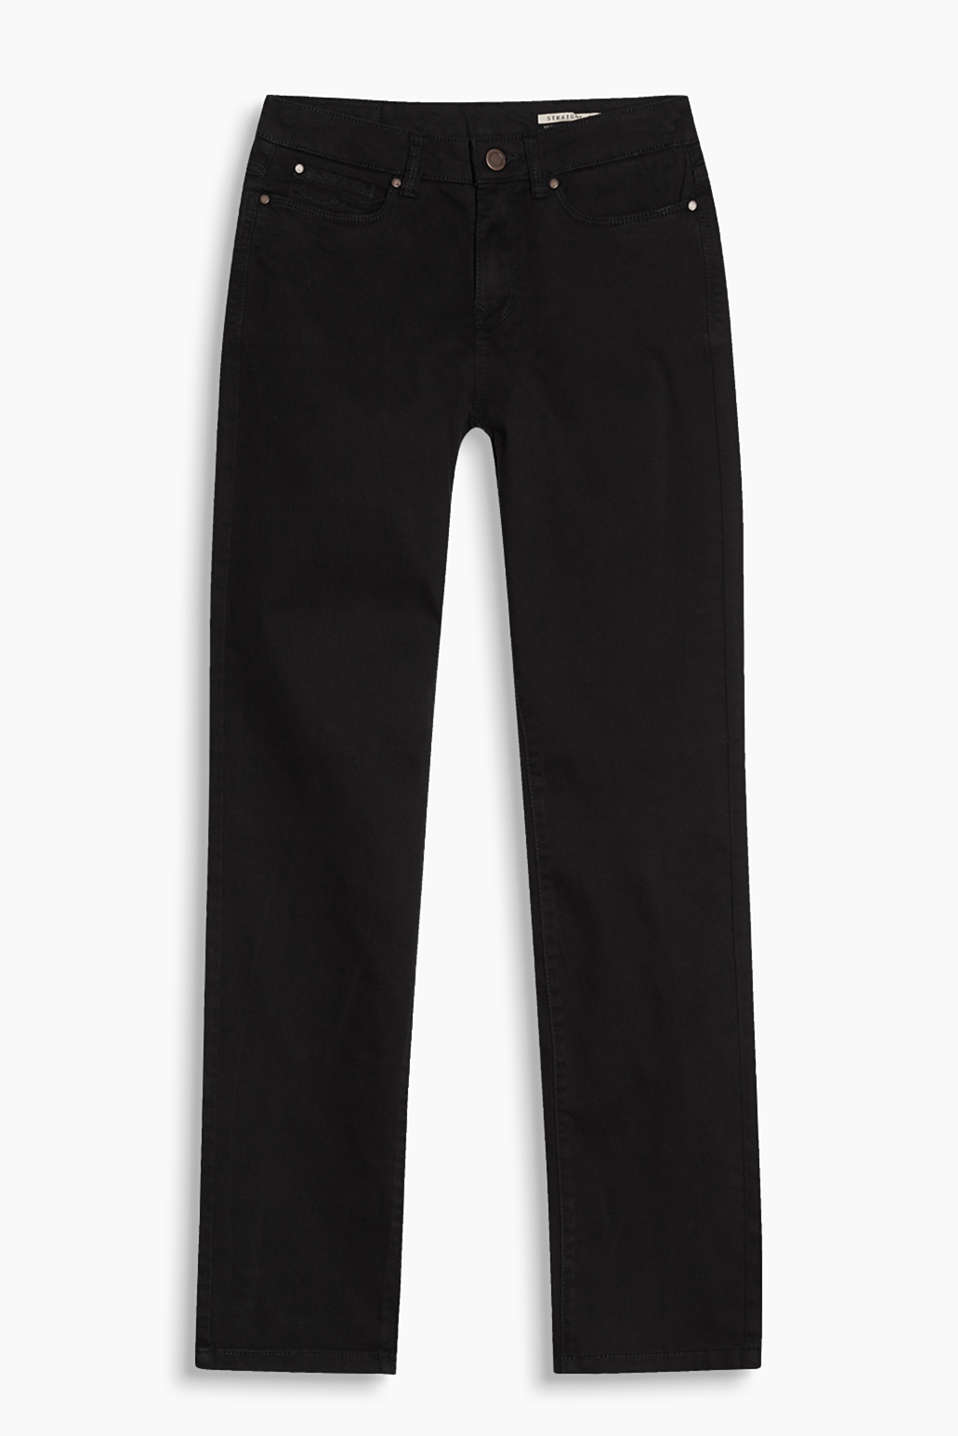 Five-pocket trousers in garment-washed cotton with stretch for comfort